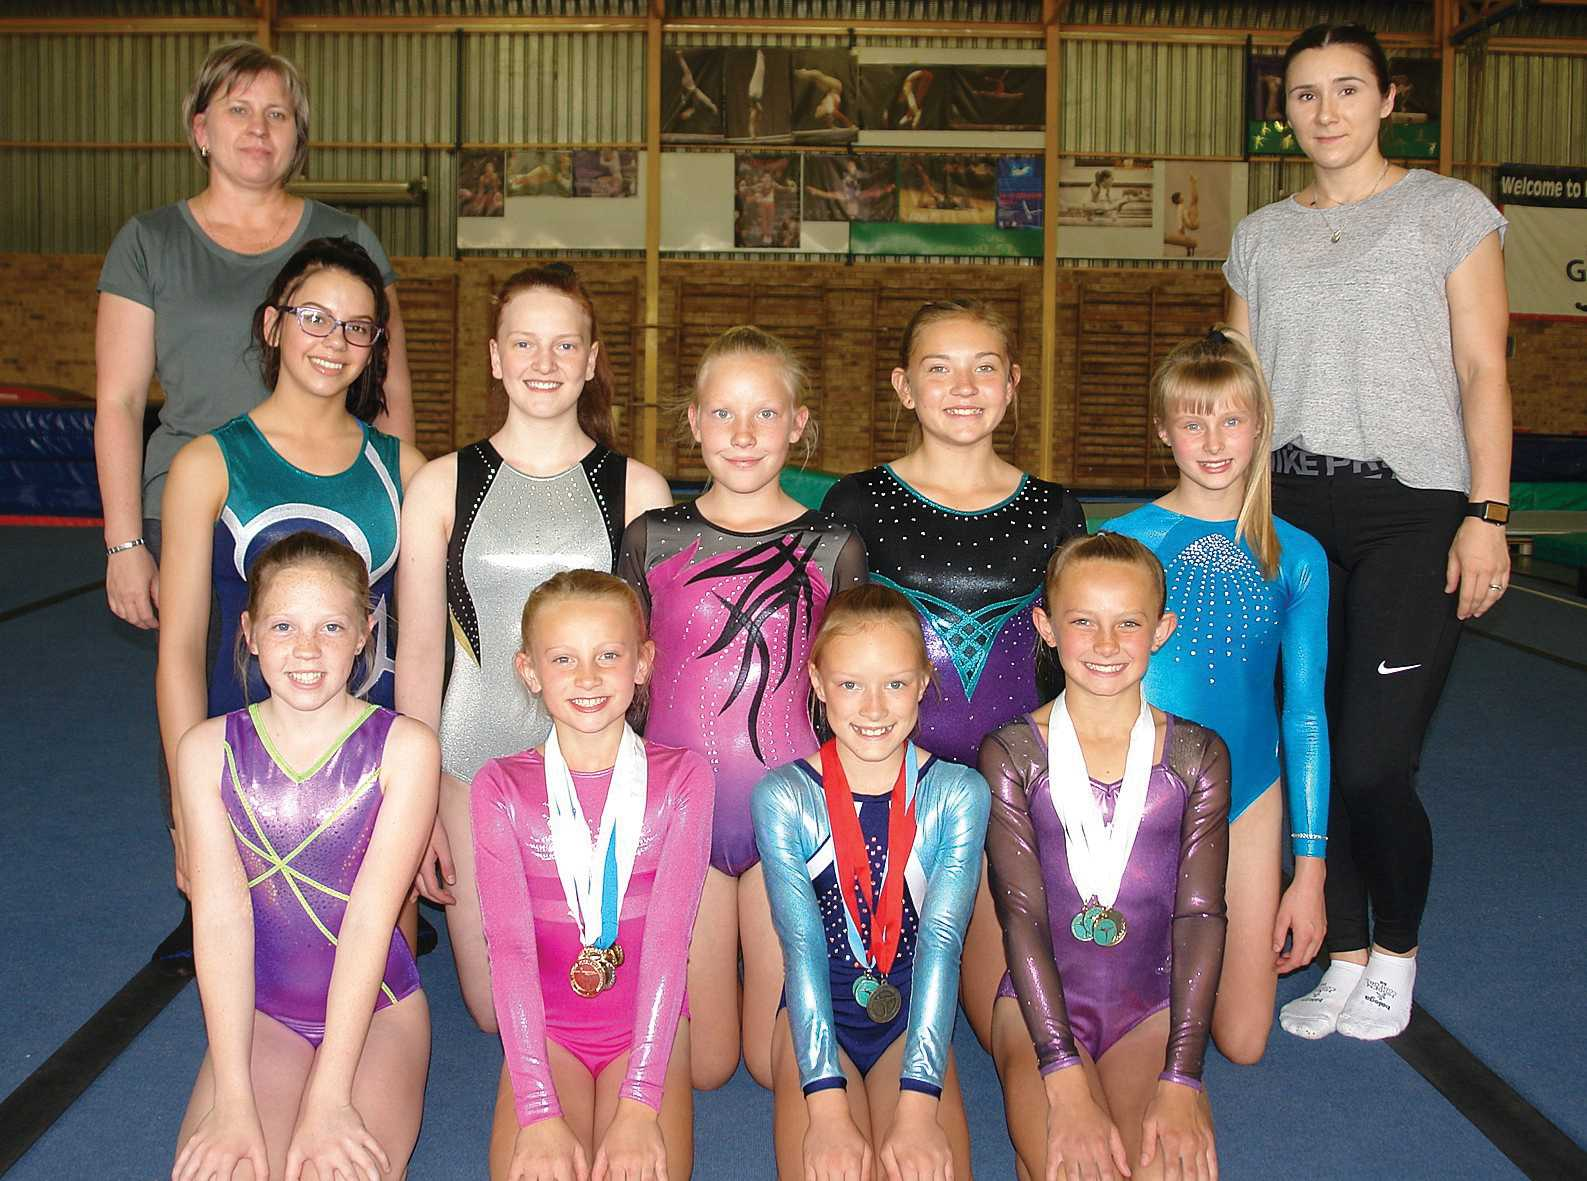 These artistic gymnasts from KSG proved themselves at the National Gym Games in Pretoria - (front) Chané Scholtz (Level 4), Ria Schulenburg (Level 4, first place overall, three gold and one silver medal), Zanté Lemmer (Level 5, third place overall, one silver and one bronze medal), Carmin Schulenburg (Level 6, first place overall and three gold medals), (back) Christelie Jansen Van Vuuren (Level 6), Enrica Buys (Level 5), Keandra Jooste (Level 4), Thelanné Joubert (Level 4) and Mia Visser (Level 6). With them are their proud coaches Suzette de Villiers and Yana Vizer-Graceffa.